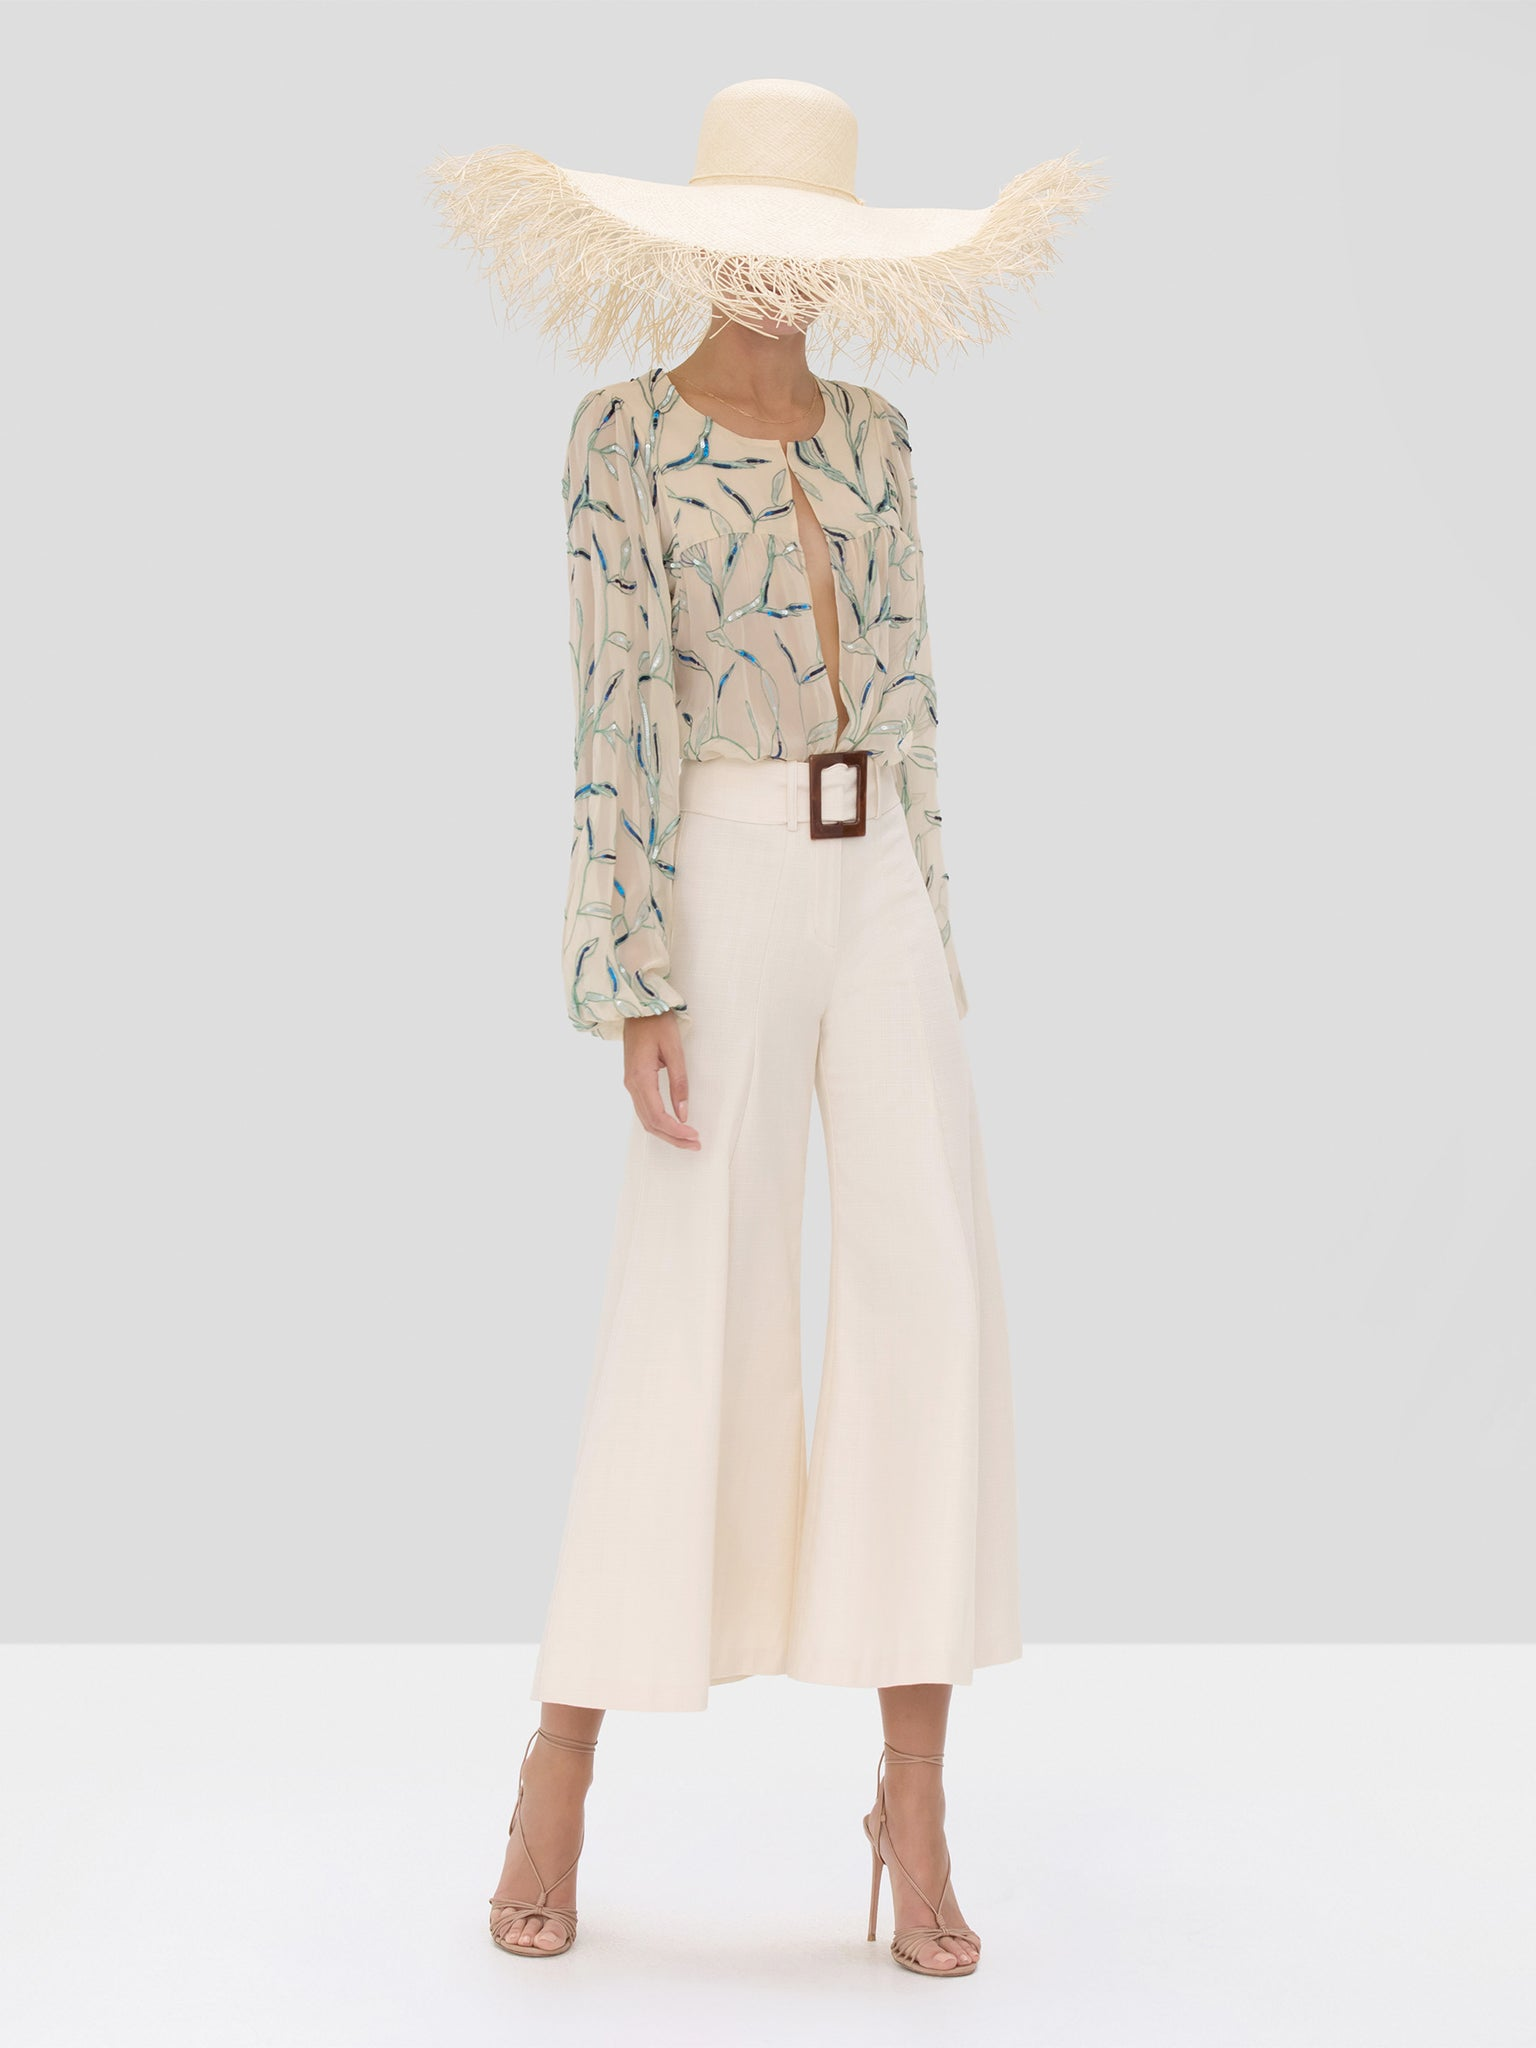 Alexis Markos Pant in Off White from Spring Summer 2020 Collection